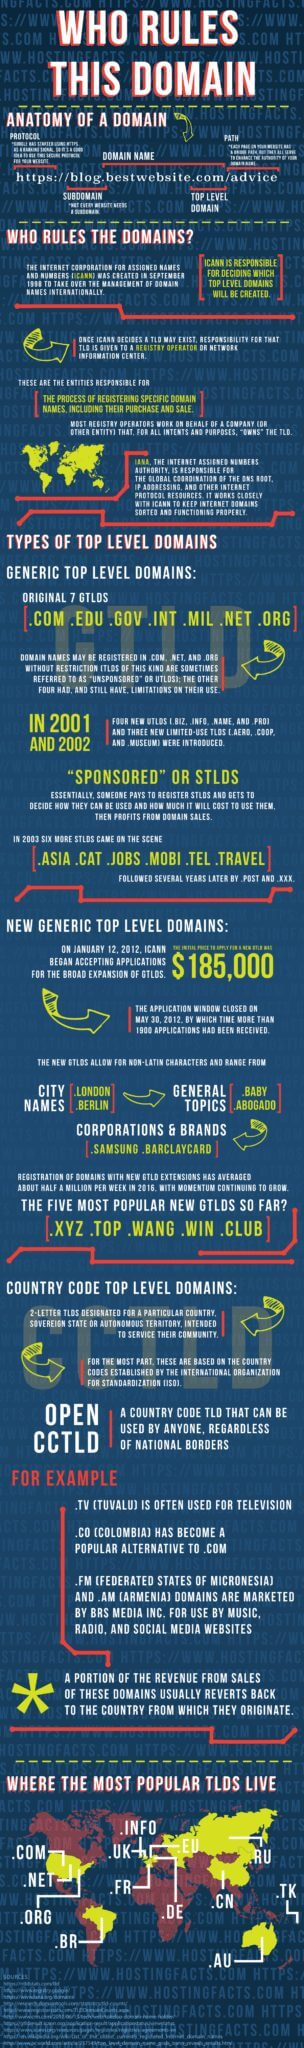 Who_Rules_Domains_Infographic